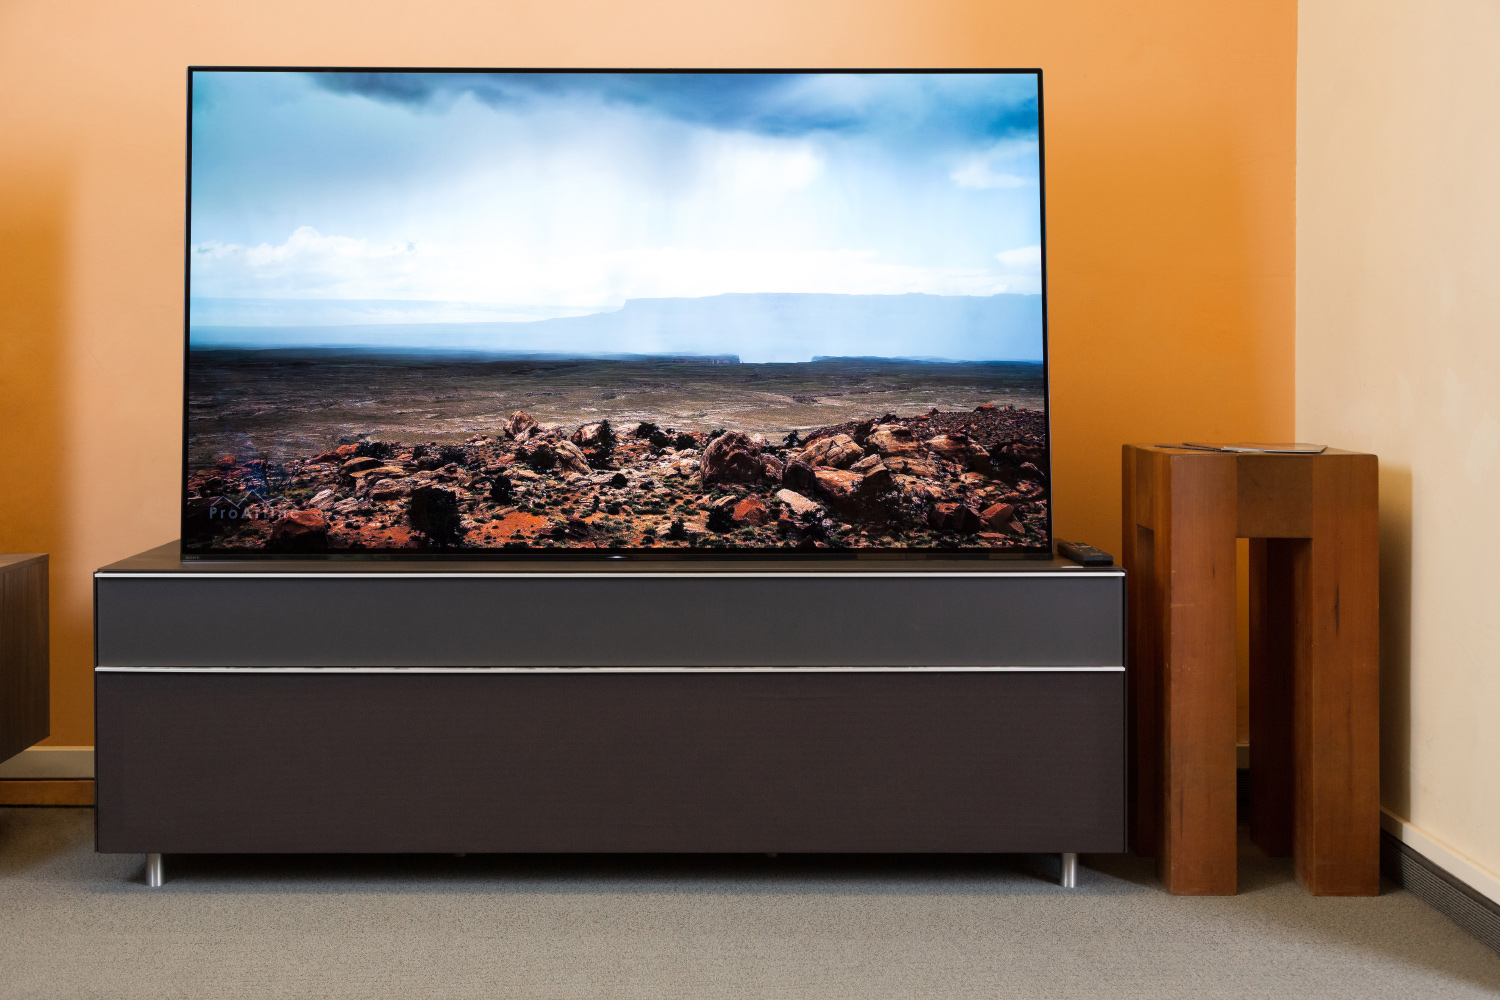 sony fernseher erkennt festplatte nicht mehr zoll fernseher mit usb recording aufnahmefunktion. Black Bedroom Furniture Sets. Home Design Ideas